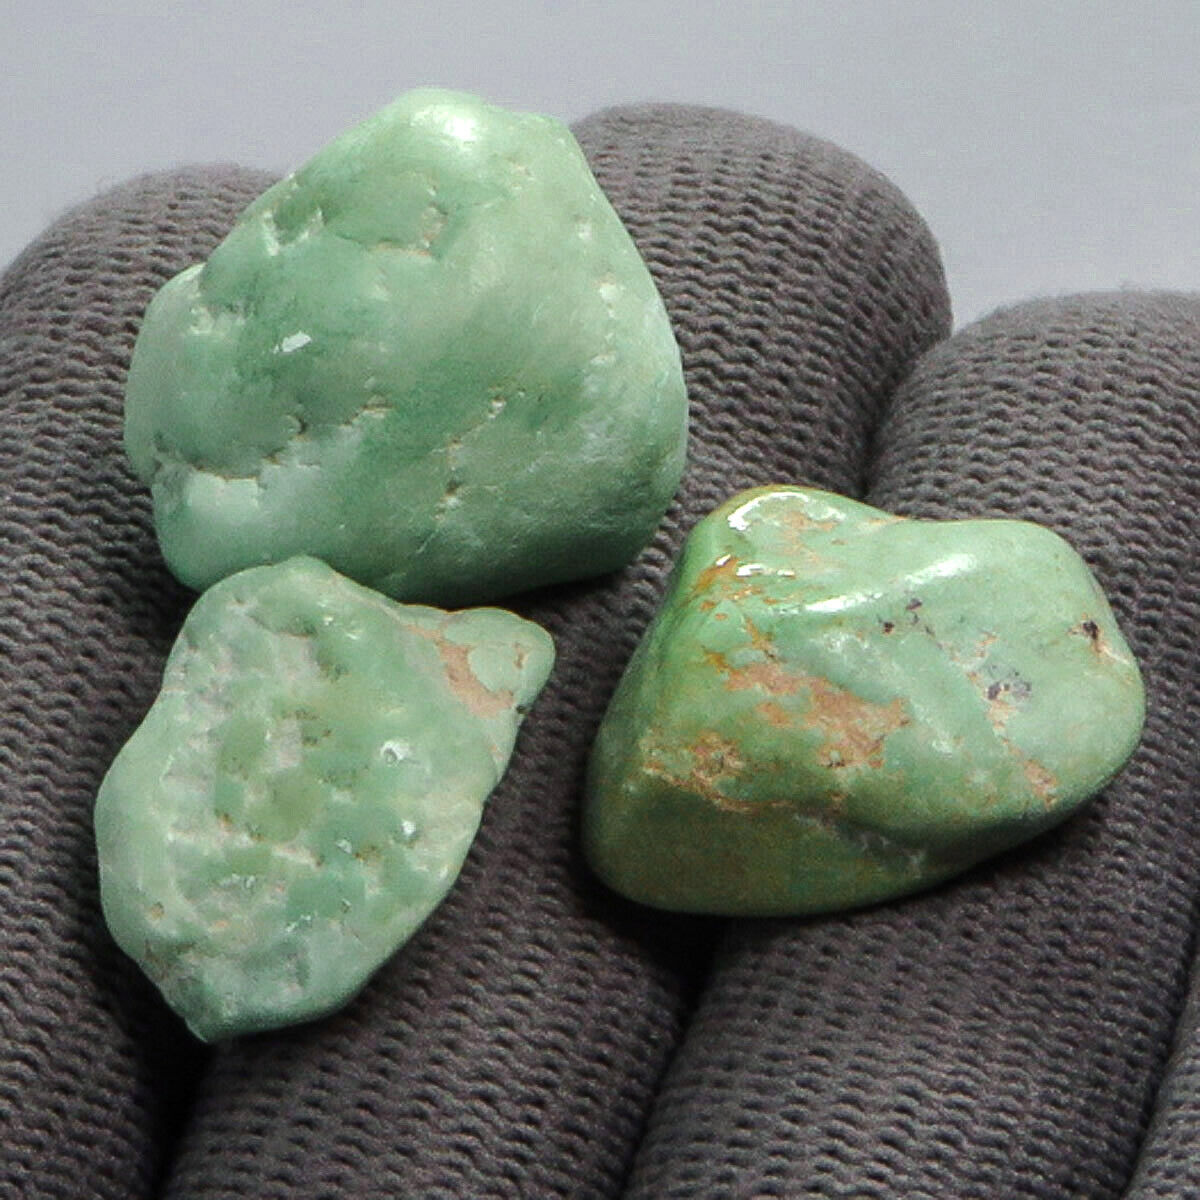 14.2g Natural Blue Green Turquoise Specimen Rough High Hardness TS335 - $1.99